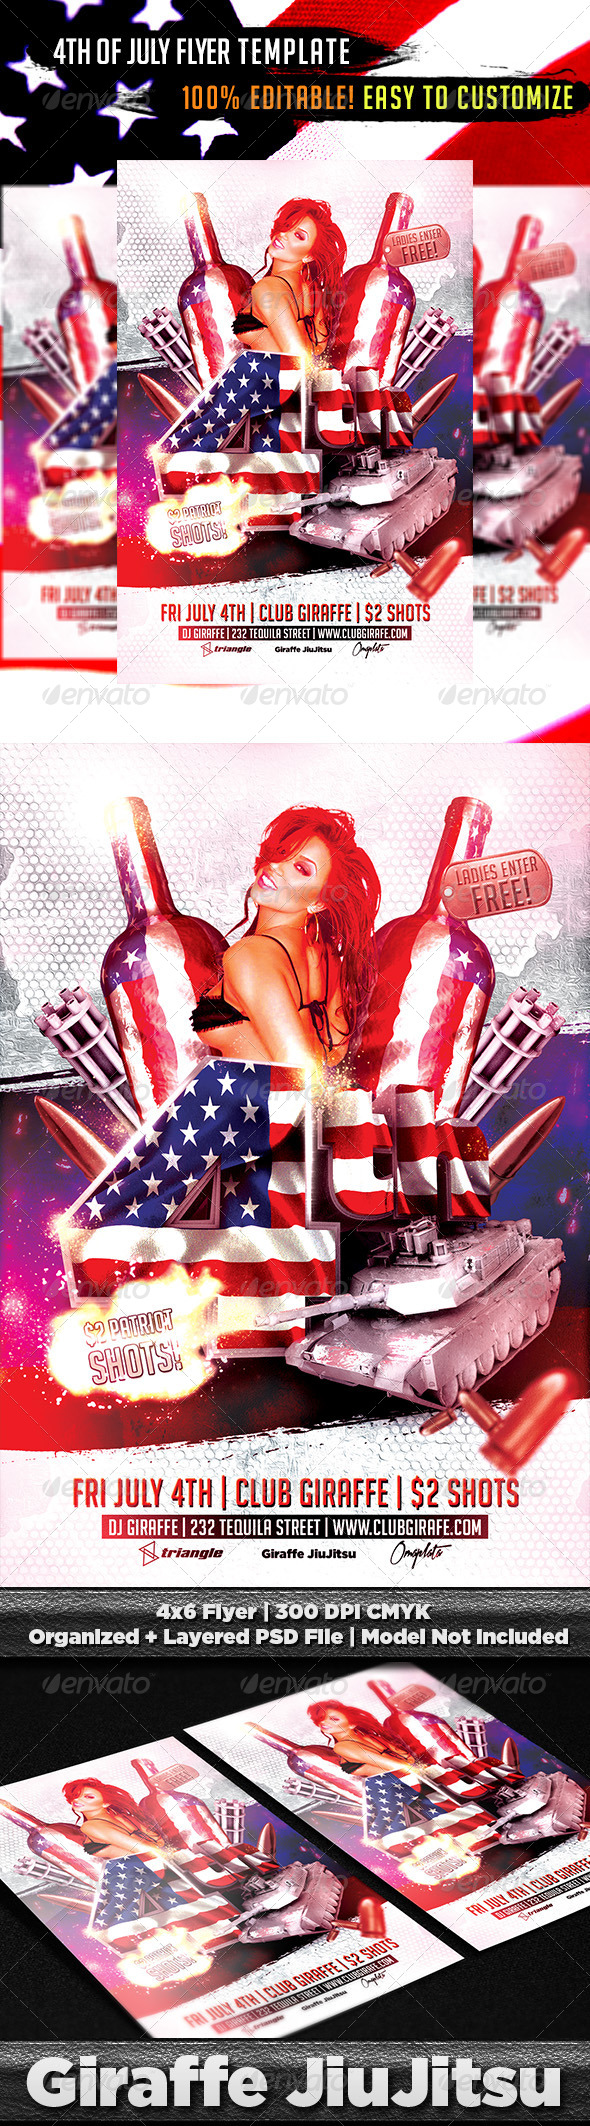 4th of july flyer template psd by giraffejiujitsu for 4th of july menu template